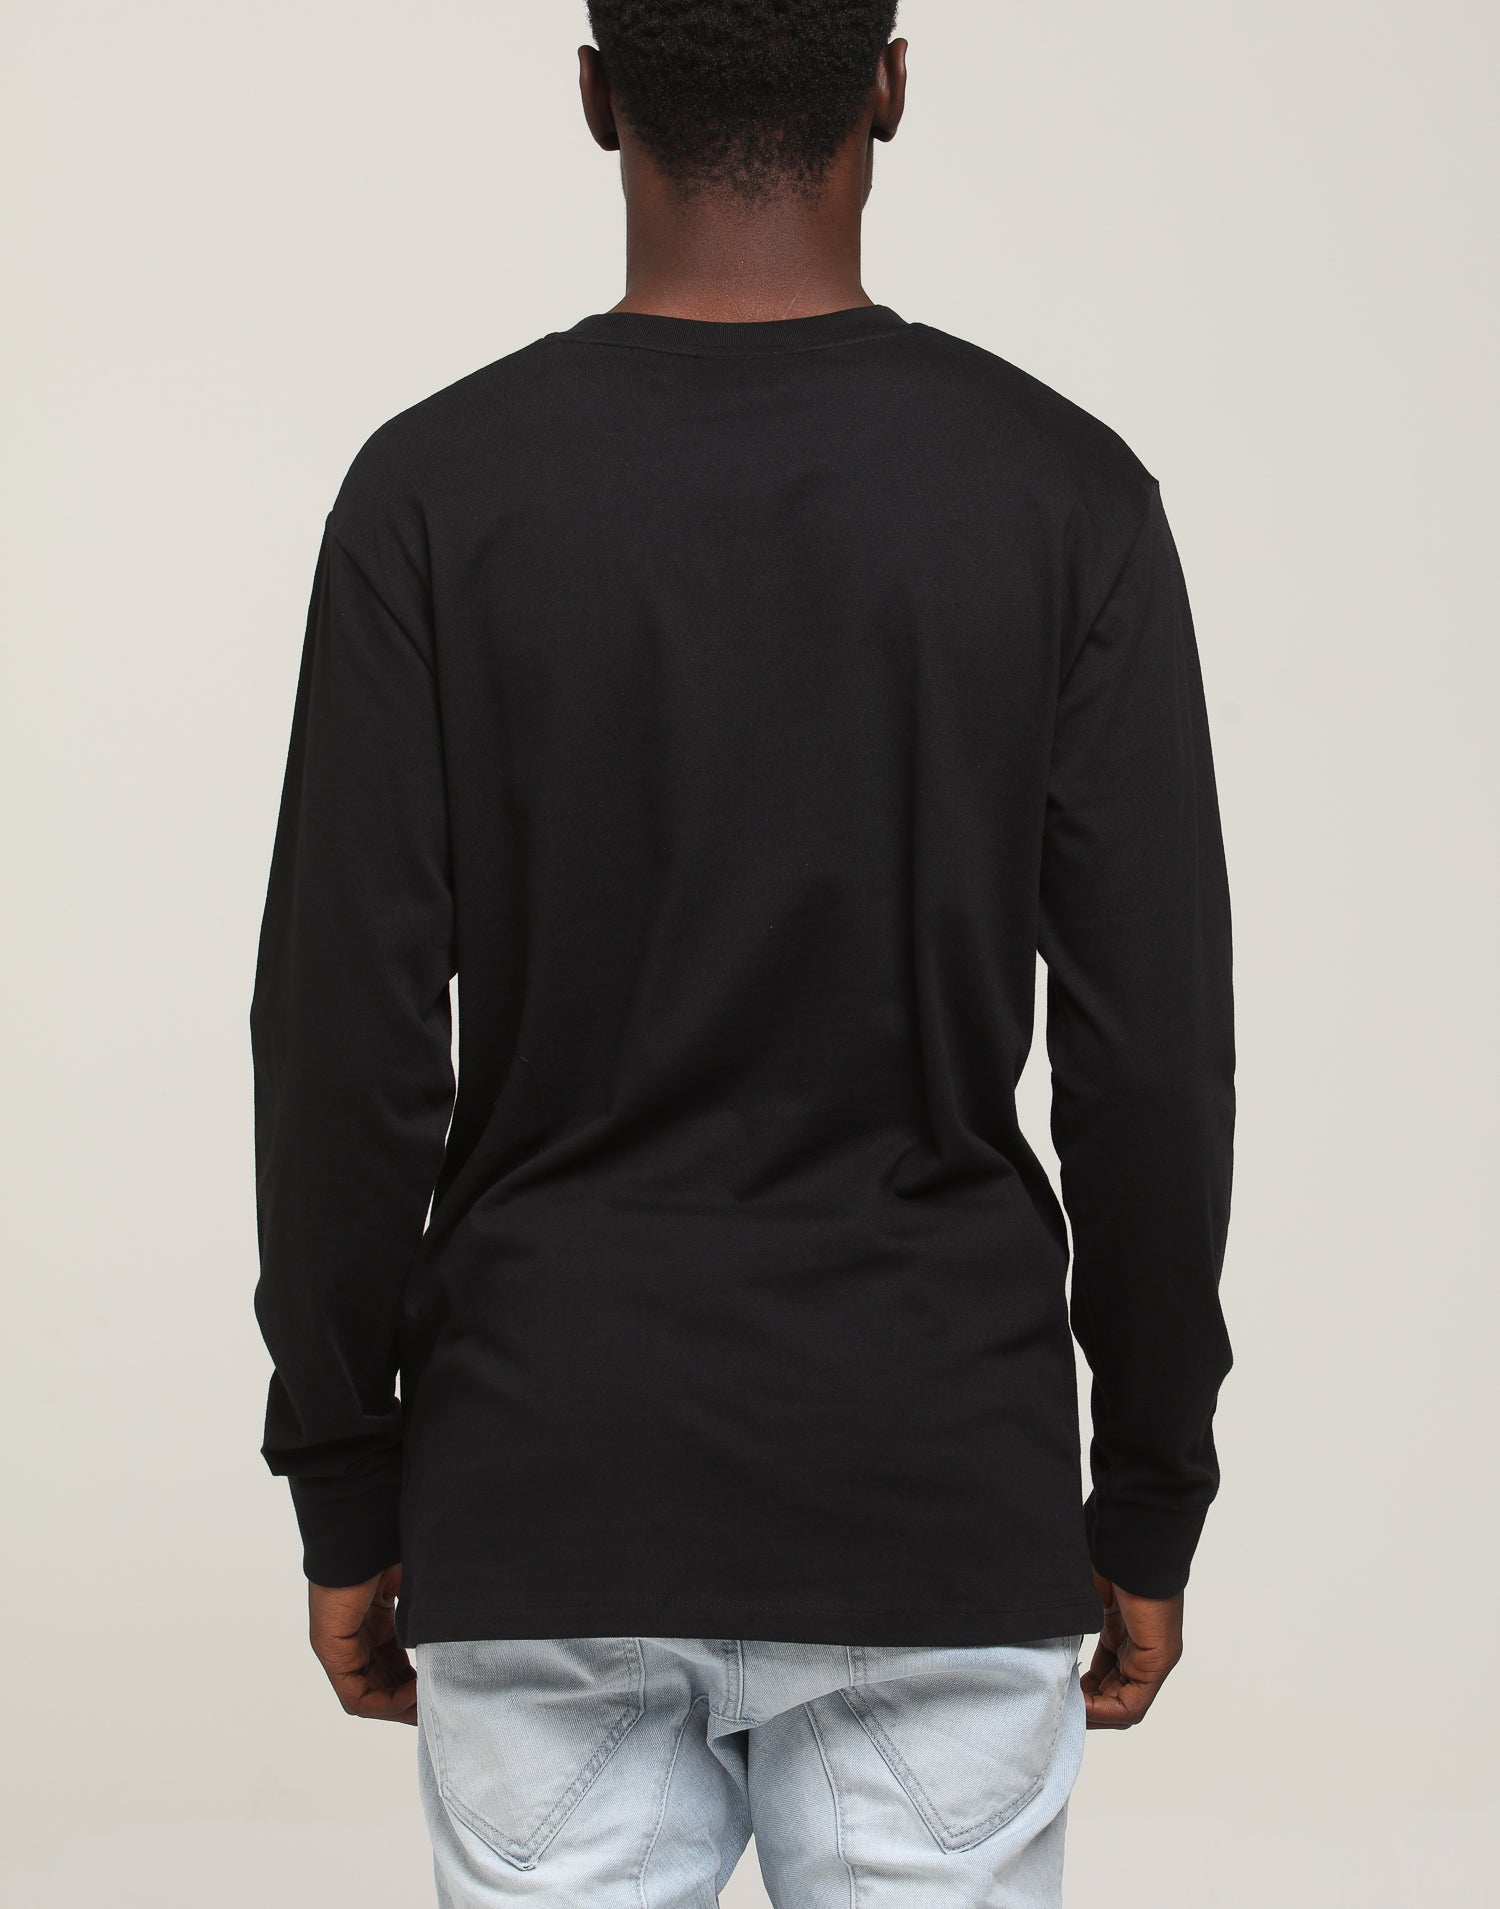 CUT THROAT GANG LS TEE - Black